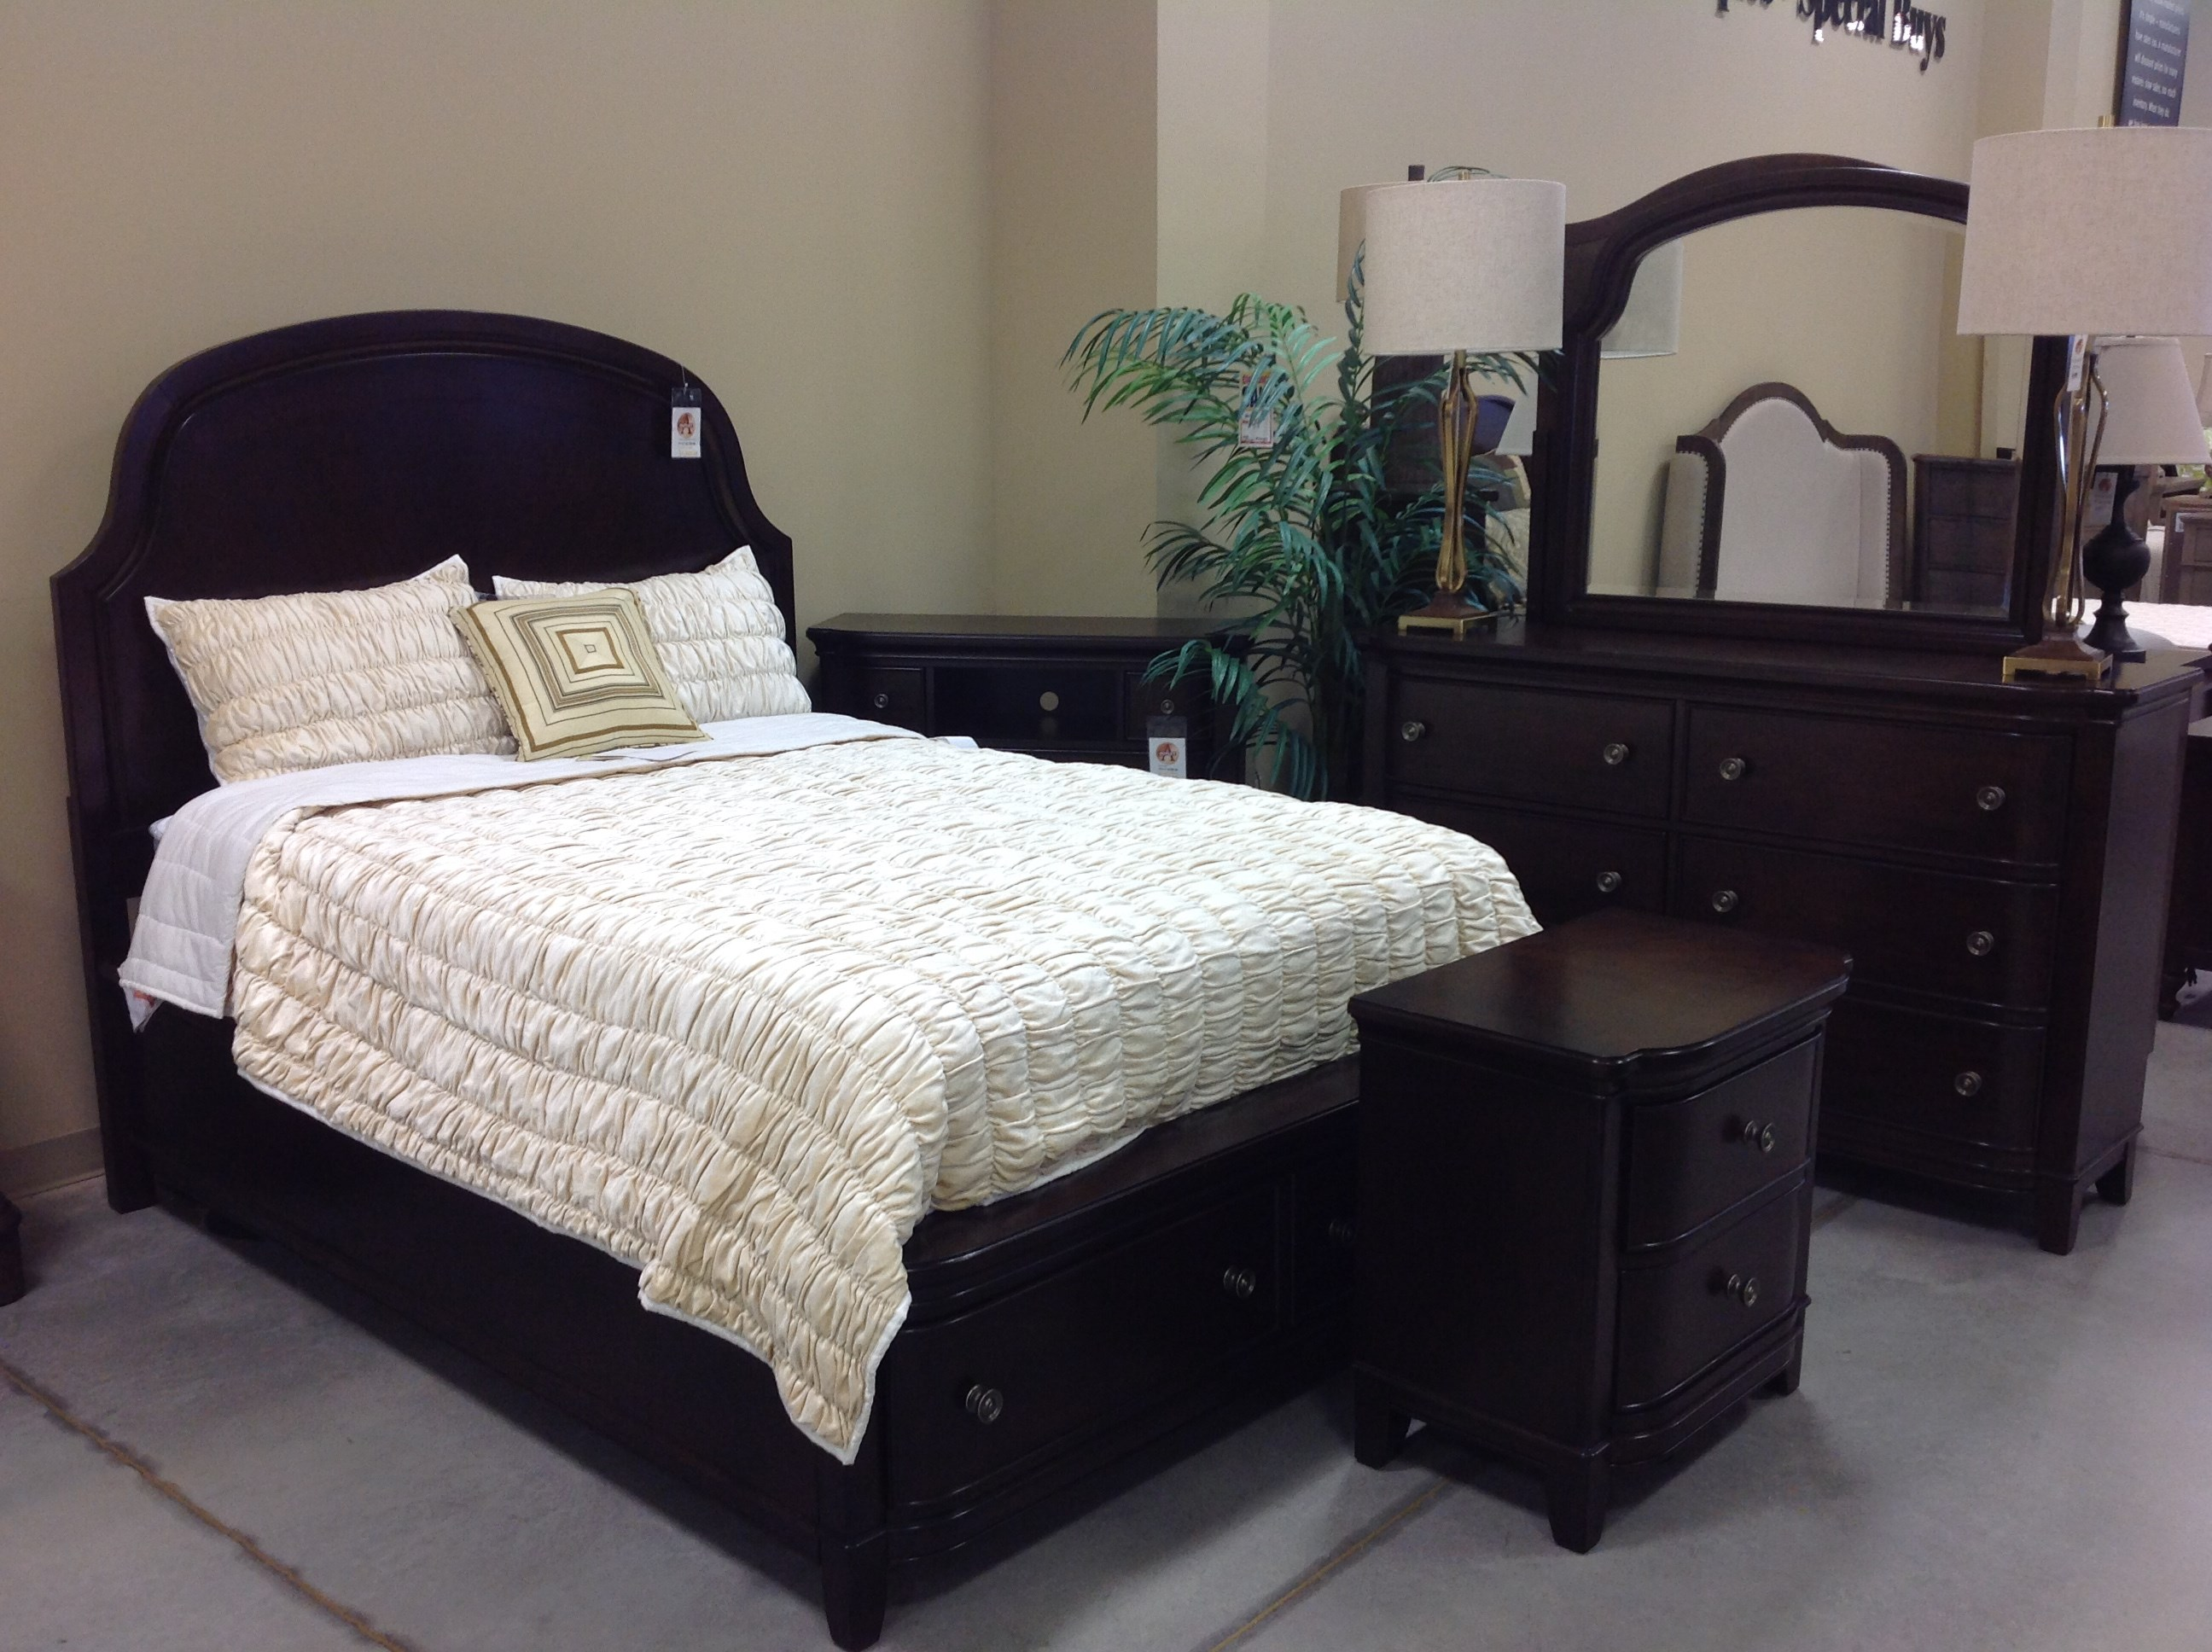 adcock outlet store - clearance furniture - georgia